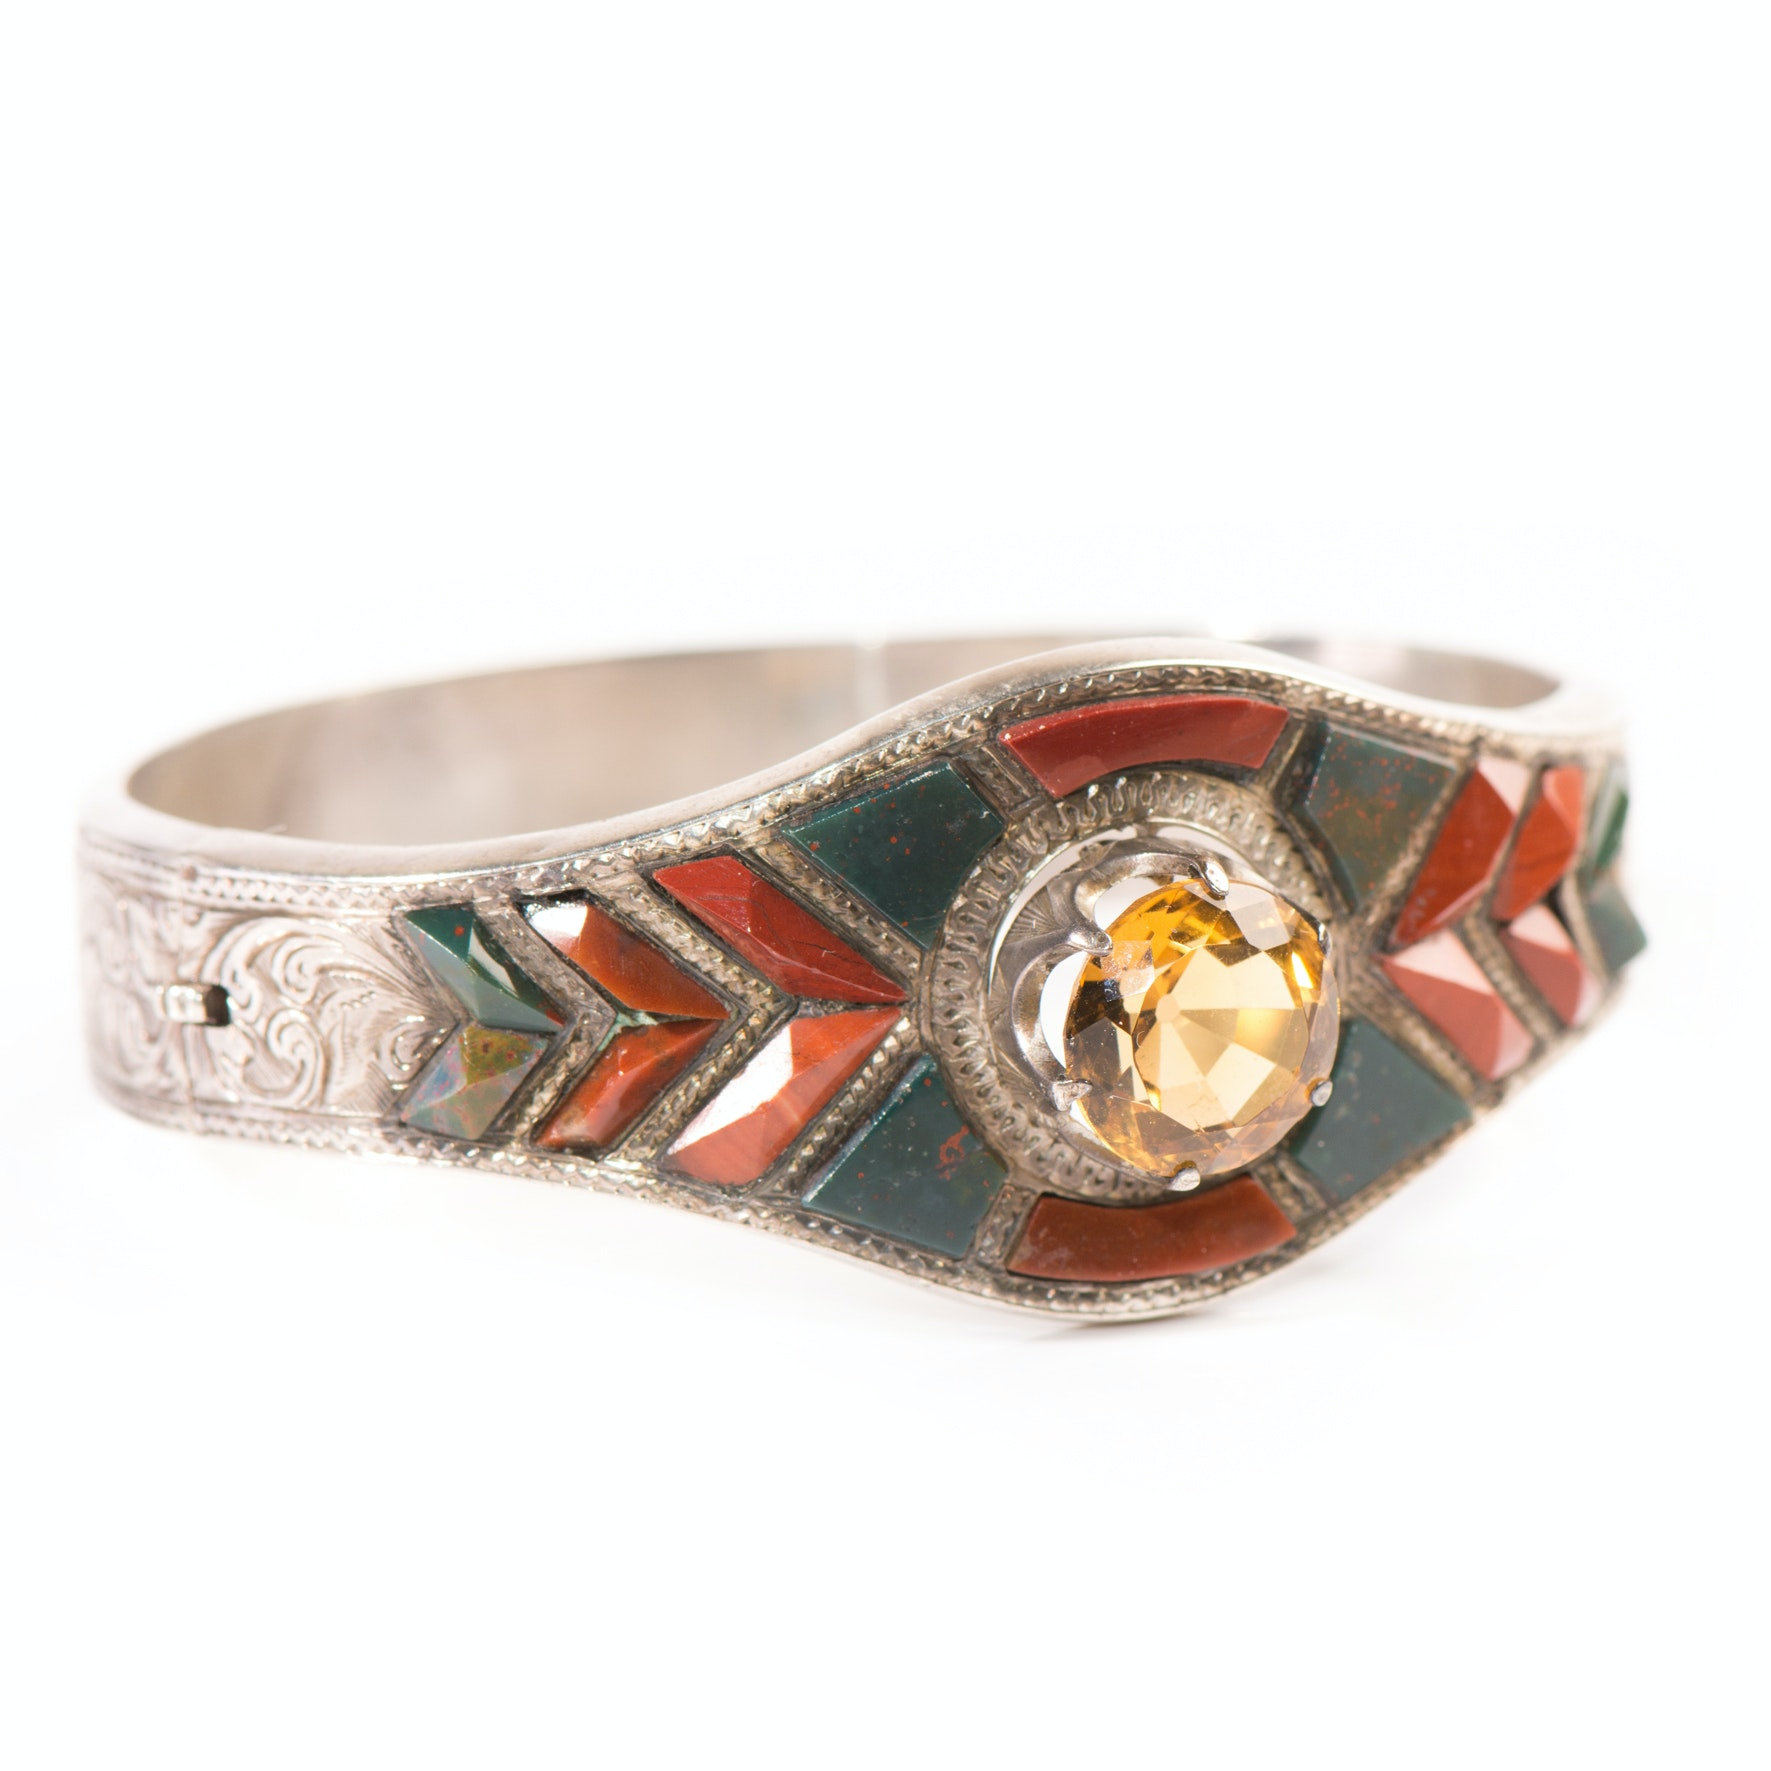 Sterling Silver Wide Tapering Bangle with 6.25 Carat Citrine